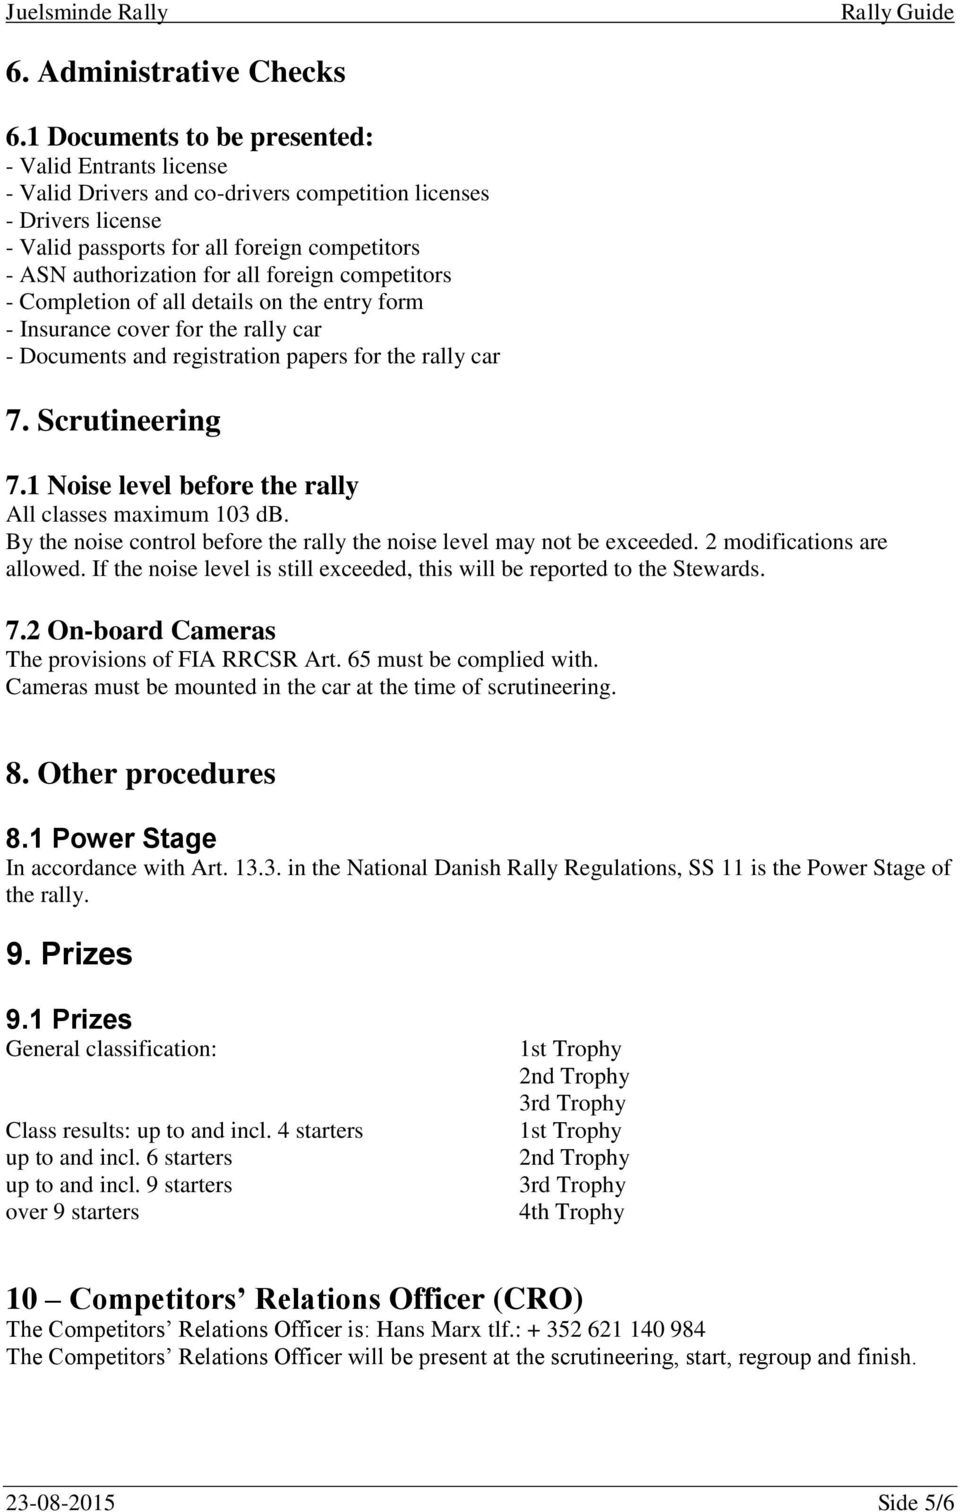 foreign competitors - Completion of all details on the entry form - Insurance cover for the rally car - Documents and registration papers for the rally car 7. Scrutineering 7.